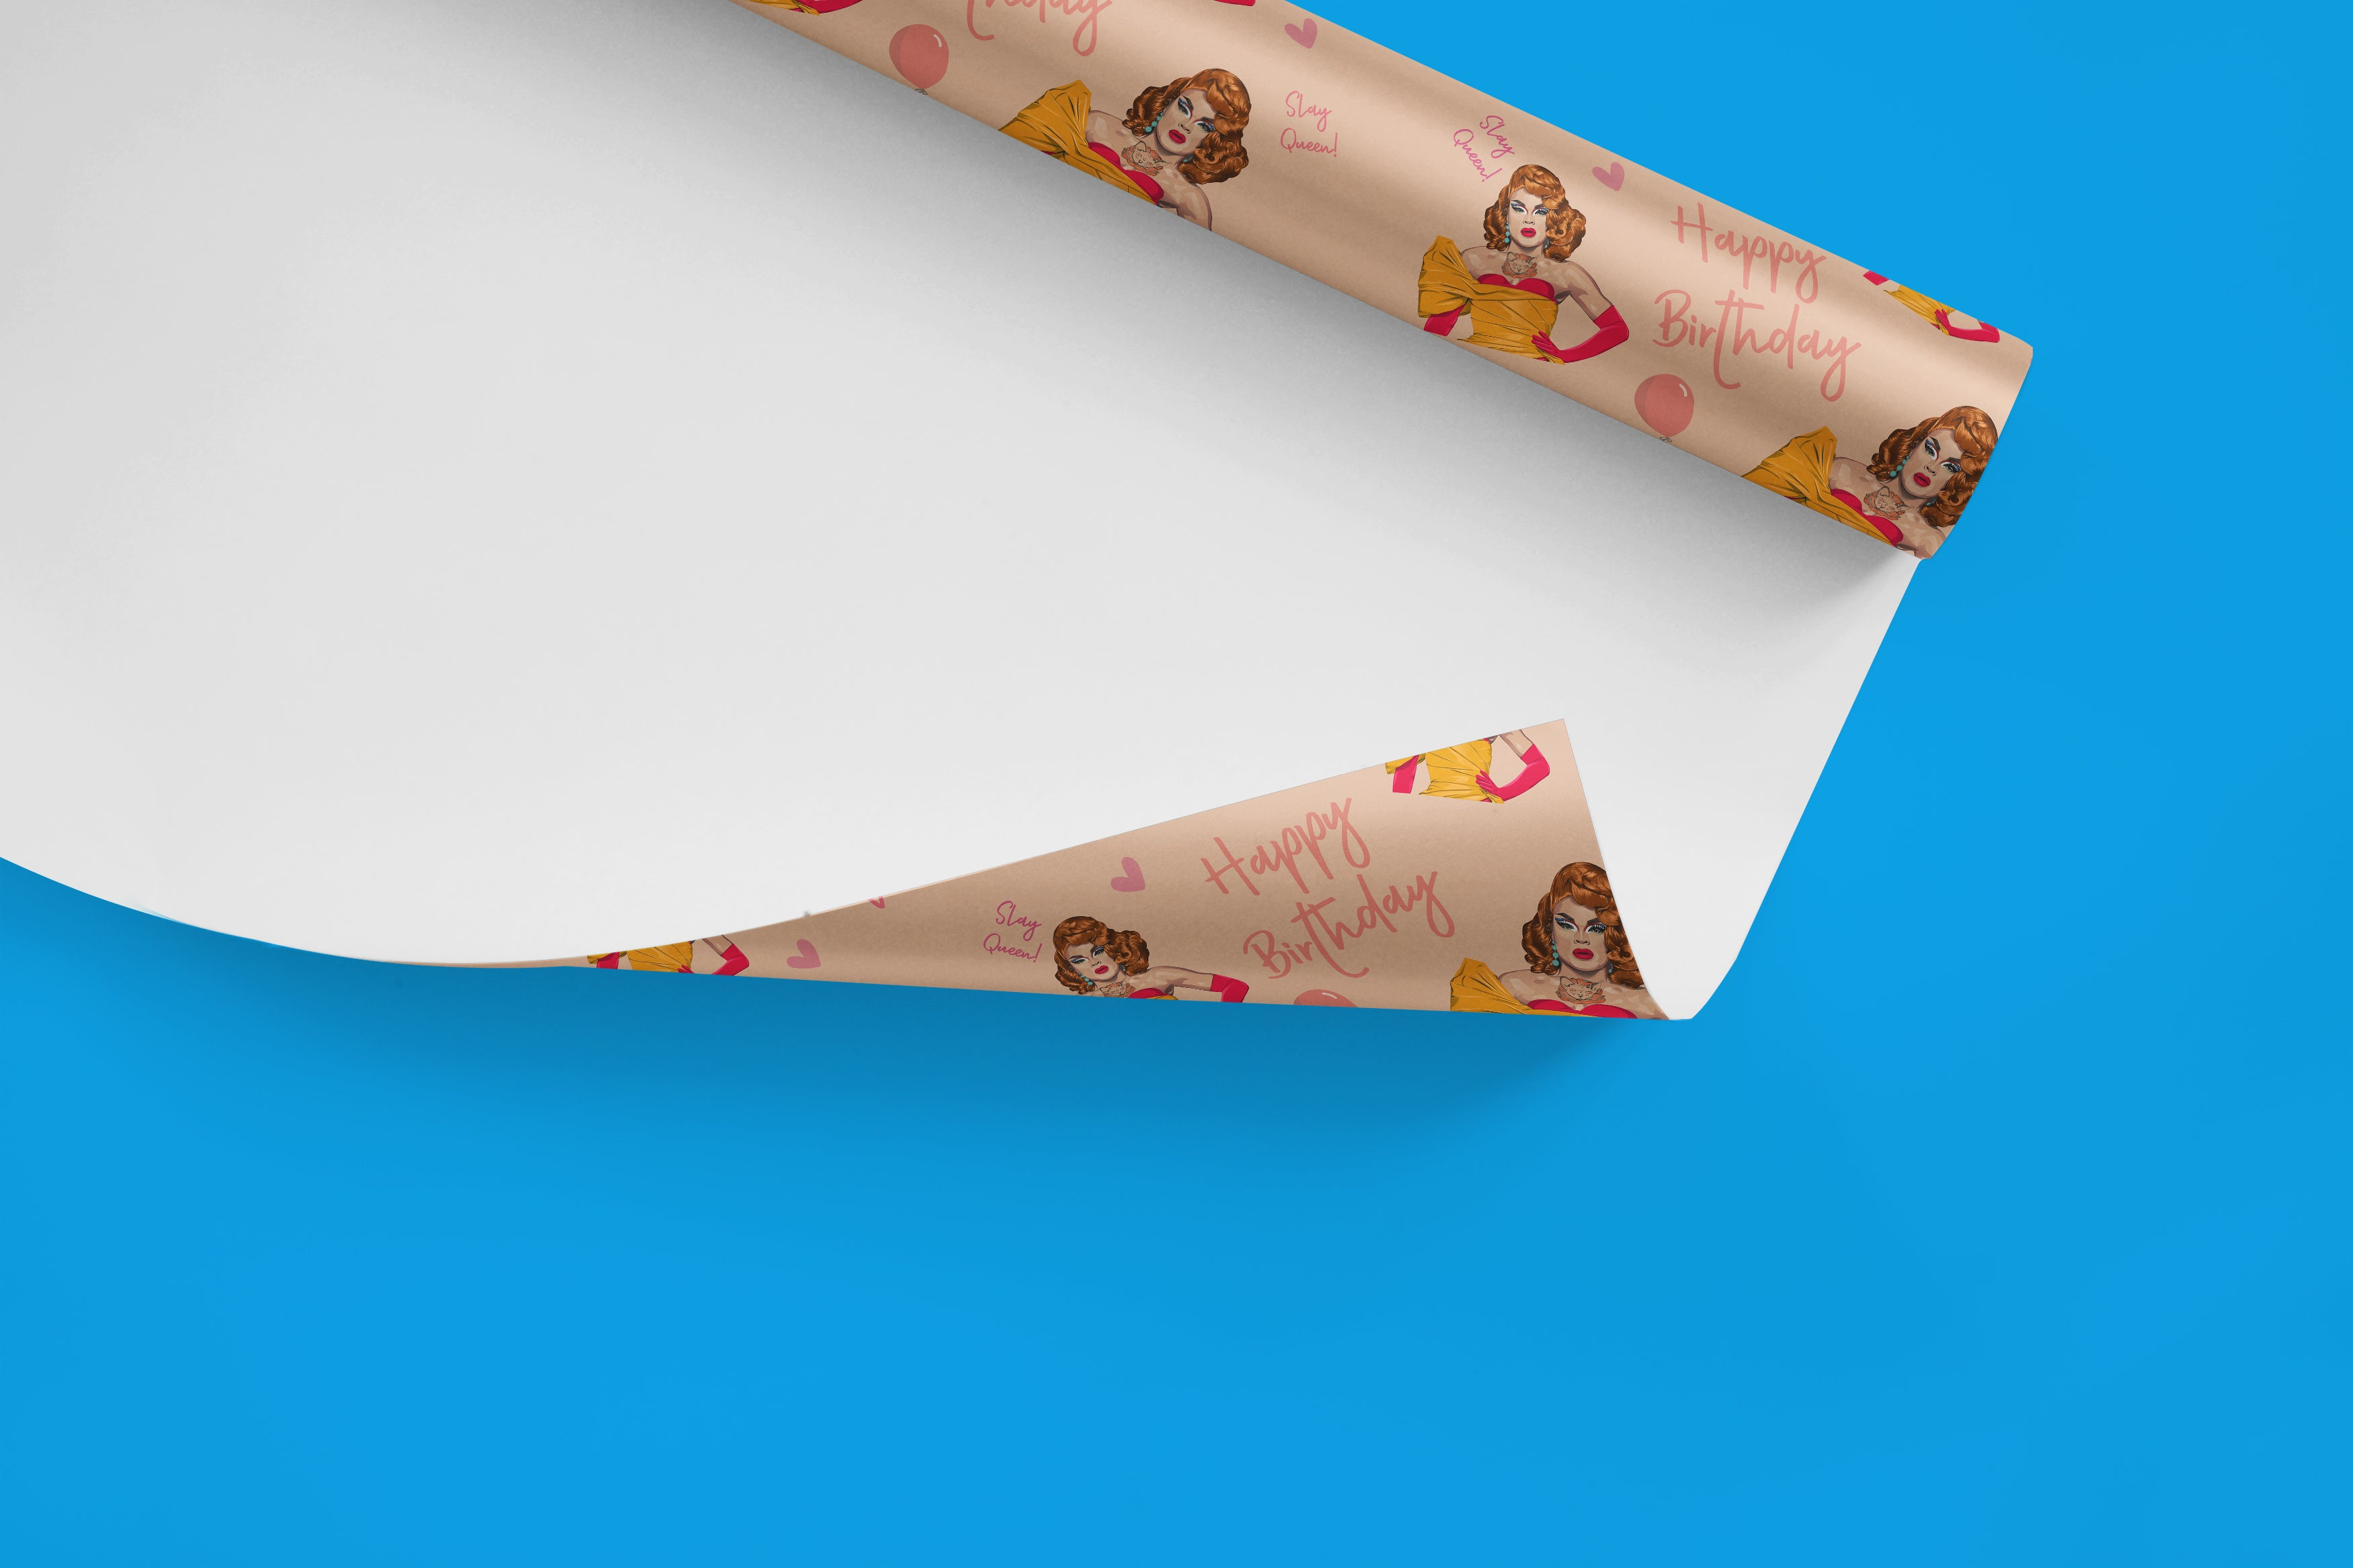 Miss Vanjie Wrapping Paper